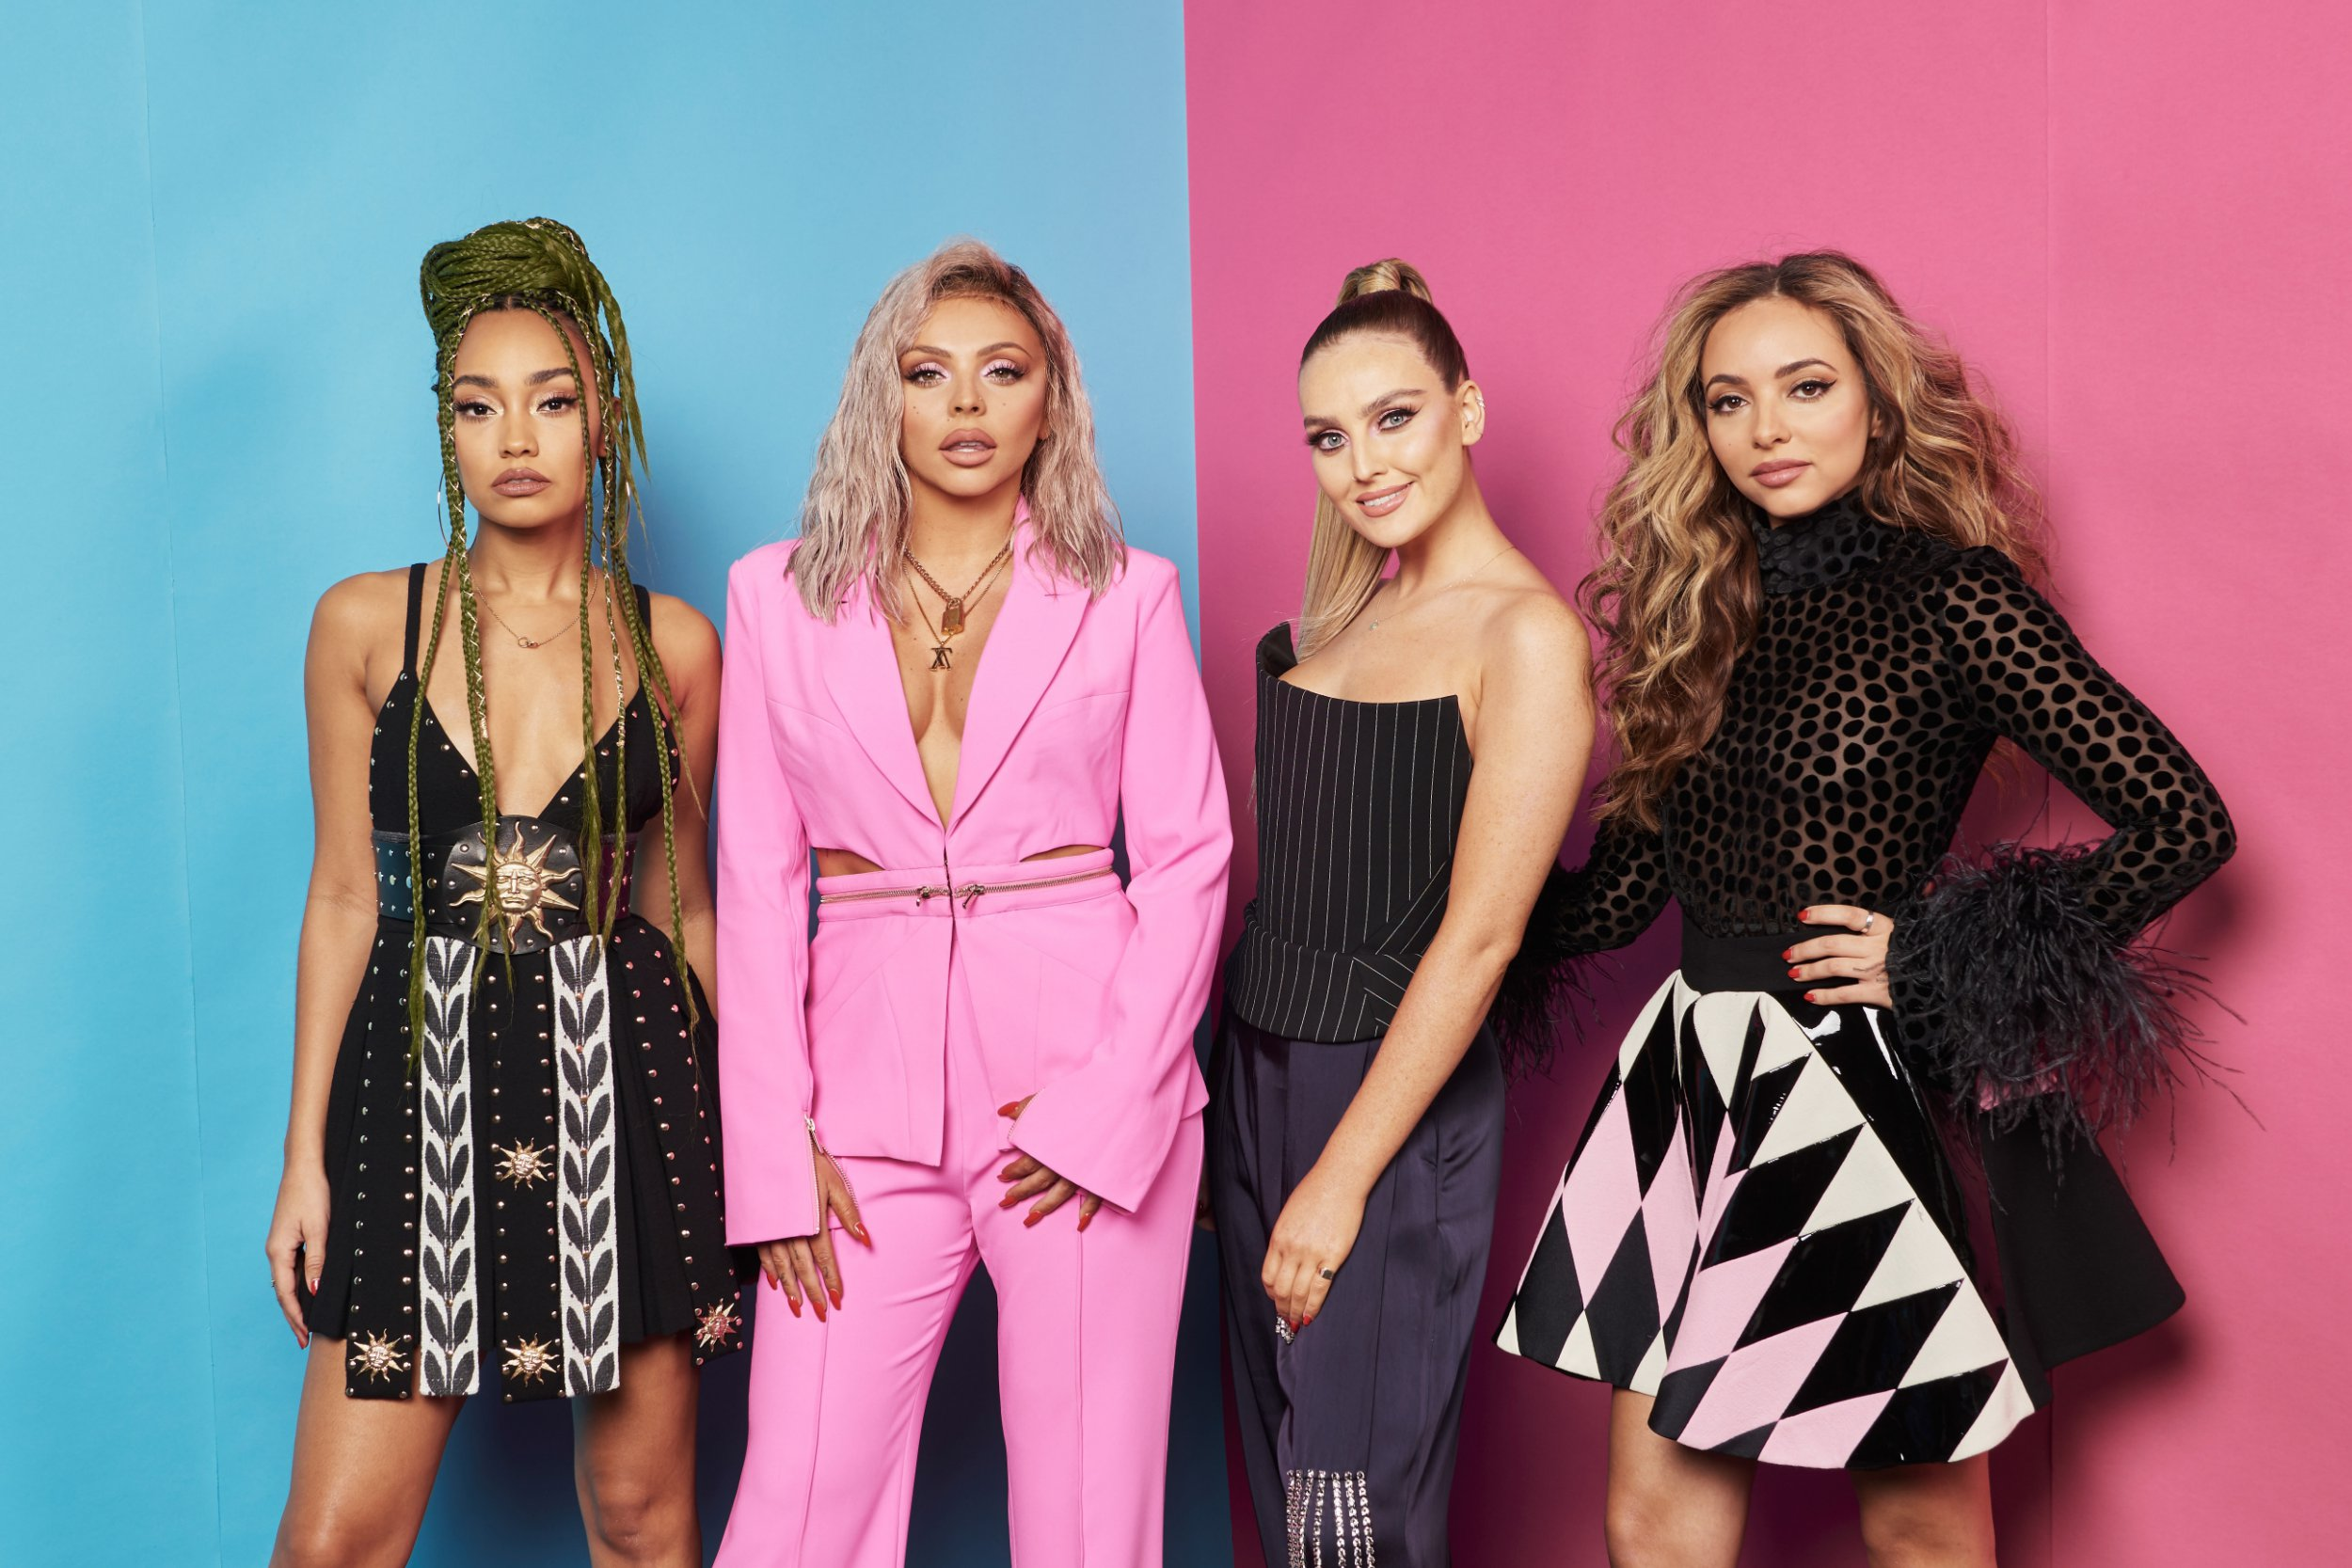 Leigh-Anne Pinnock, Jesy Nelson, Perrie Edwards and Jade Thirlwall of Little Mix pose at the MTV EMAs 2018 studio at Bilbao Exhibition Centre on November 4, 2018 in Bilbao, Spain. (Photo by Gareth Cattermole/MTV 2018/Getty Images for MTV)